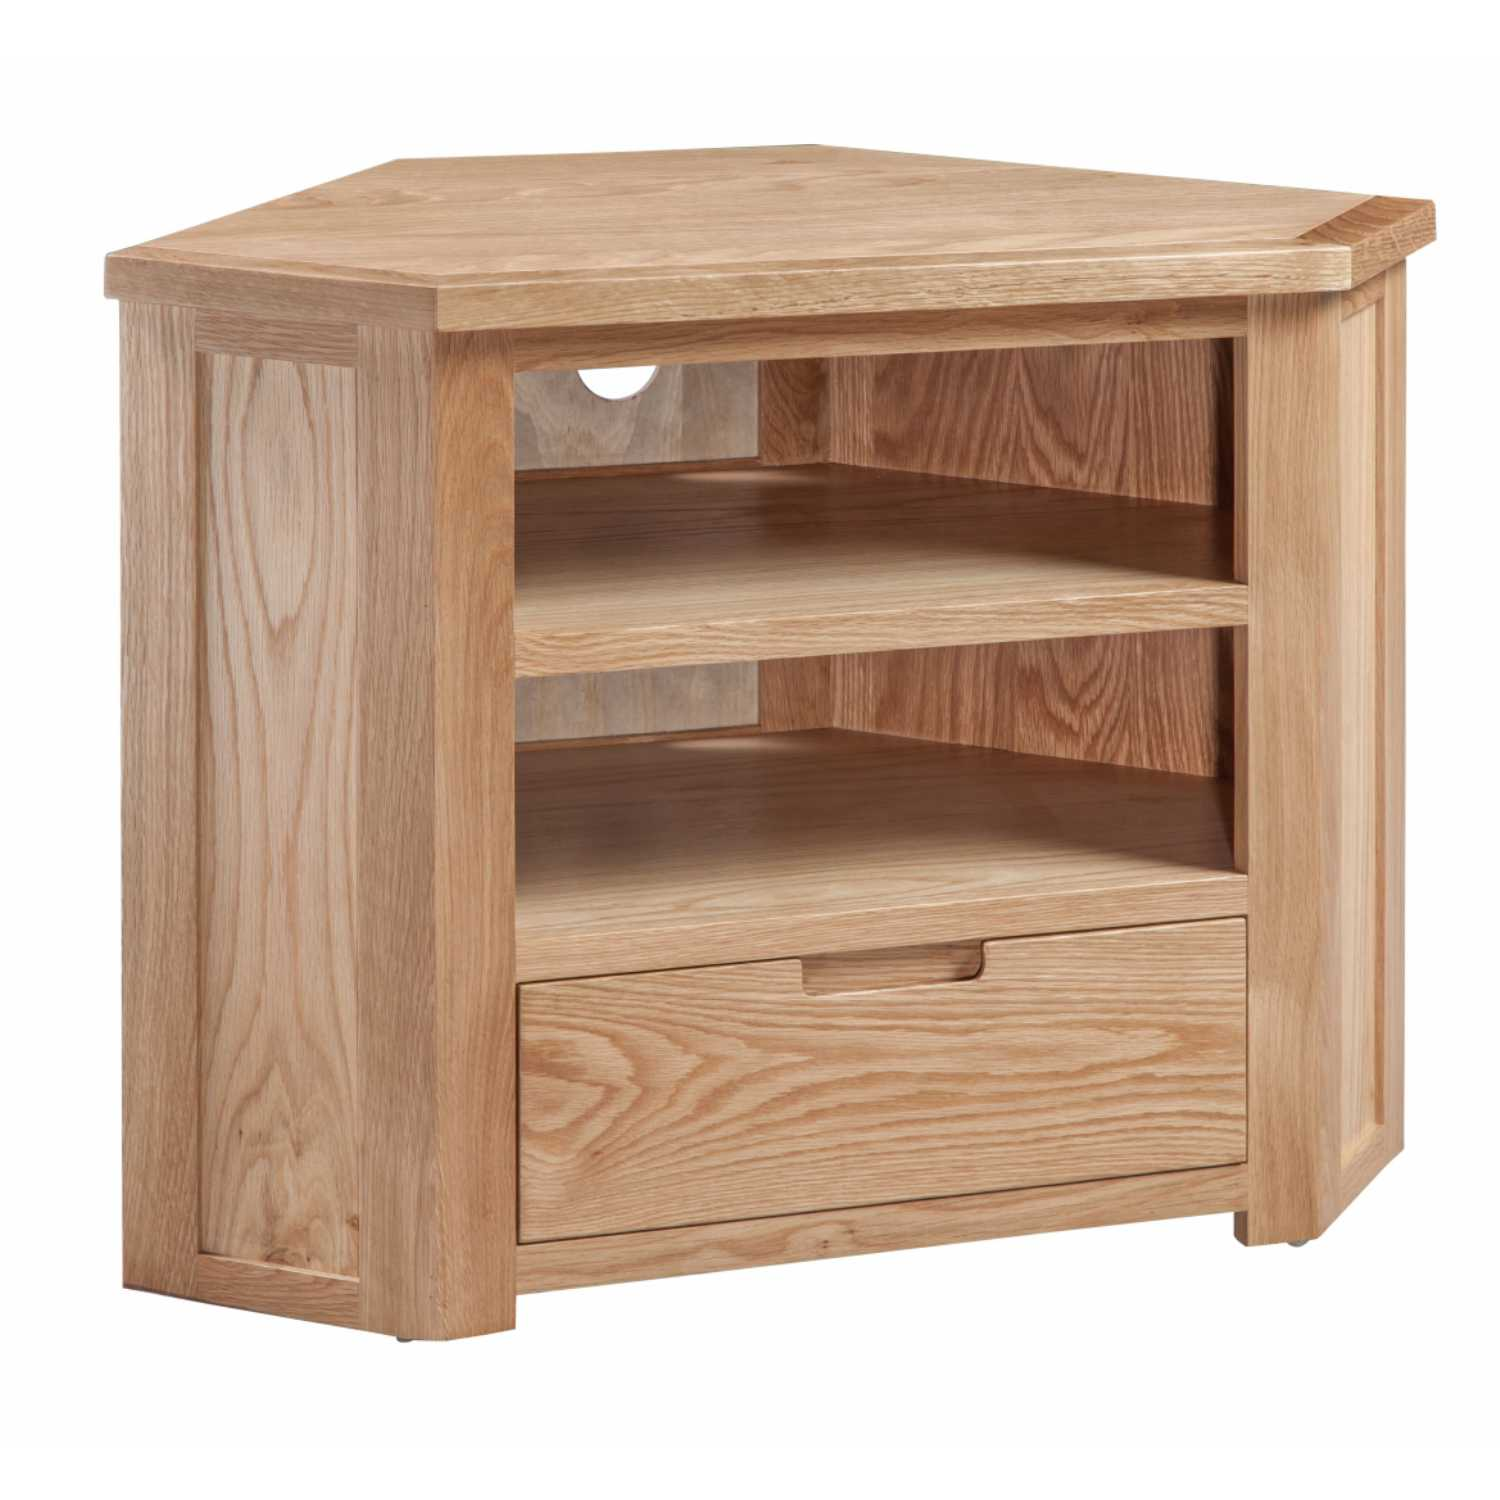 Oak Small Corner TV Media Cabinet with 1 Drawer Open Shelf Moderna Range